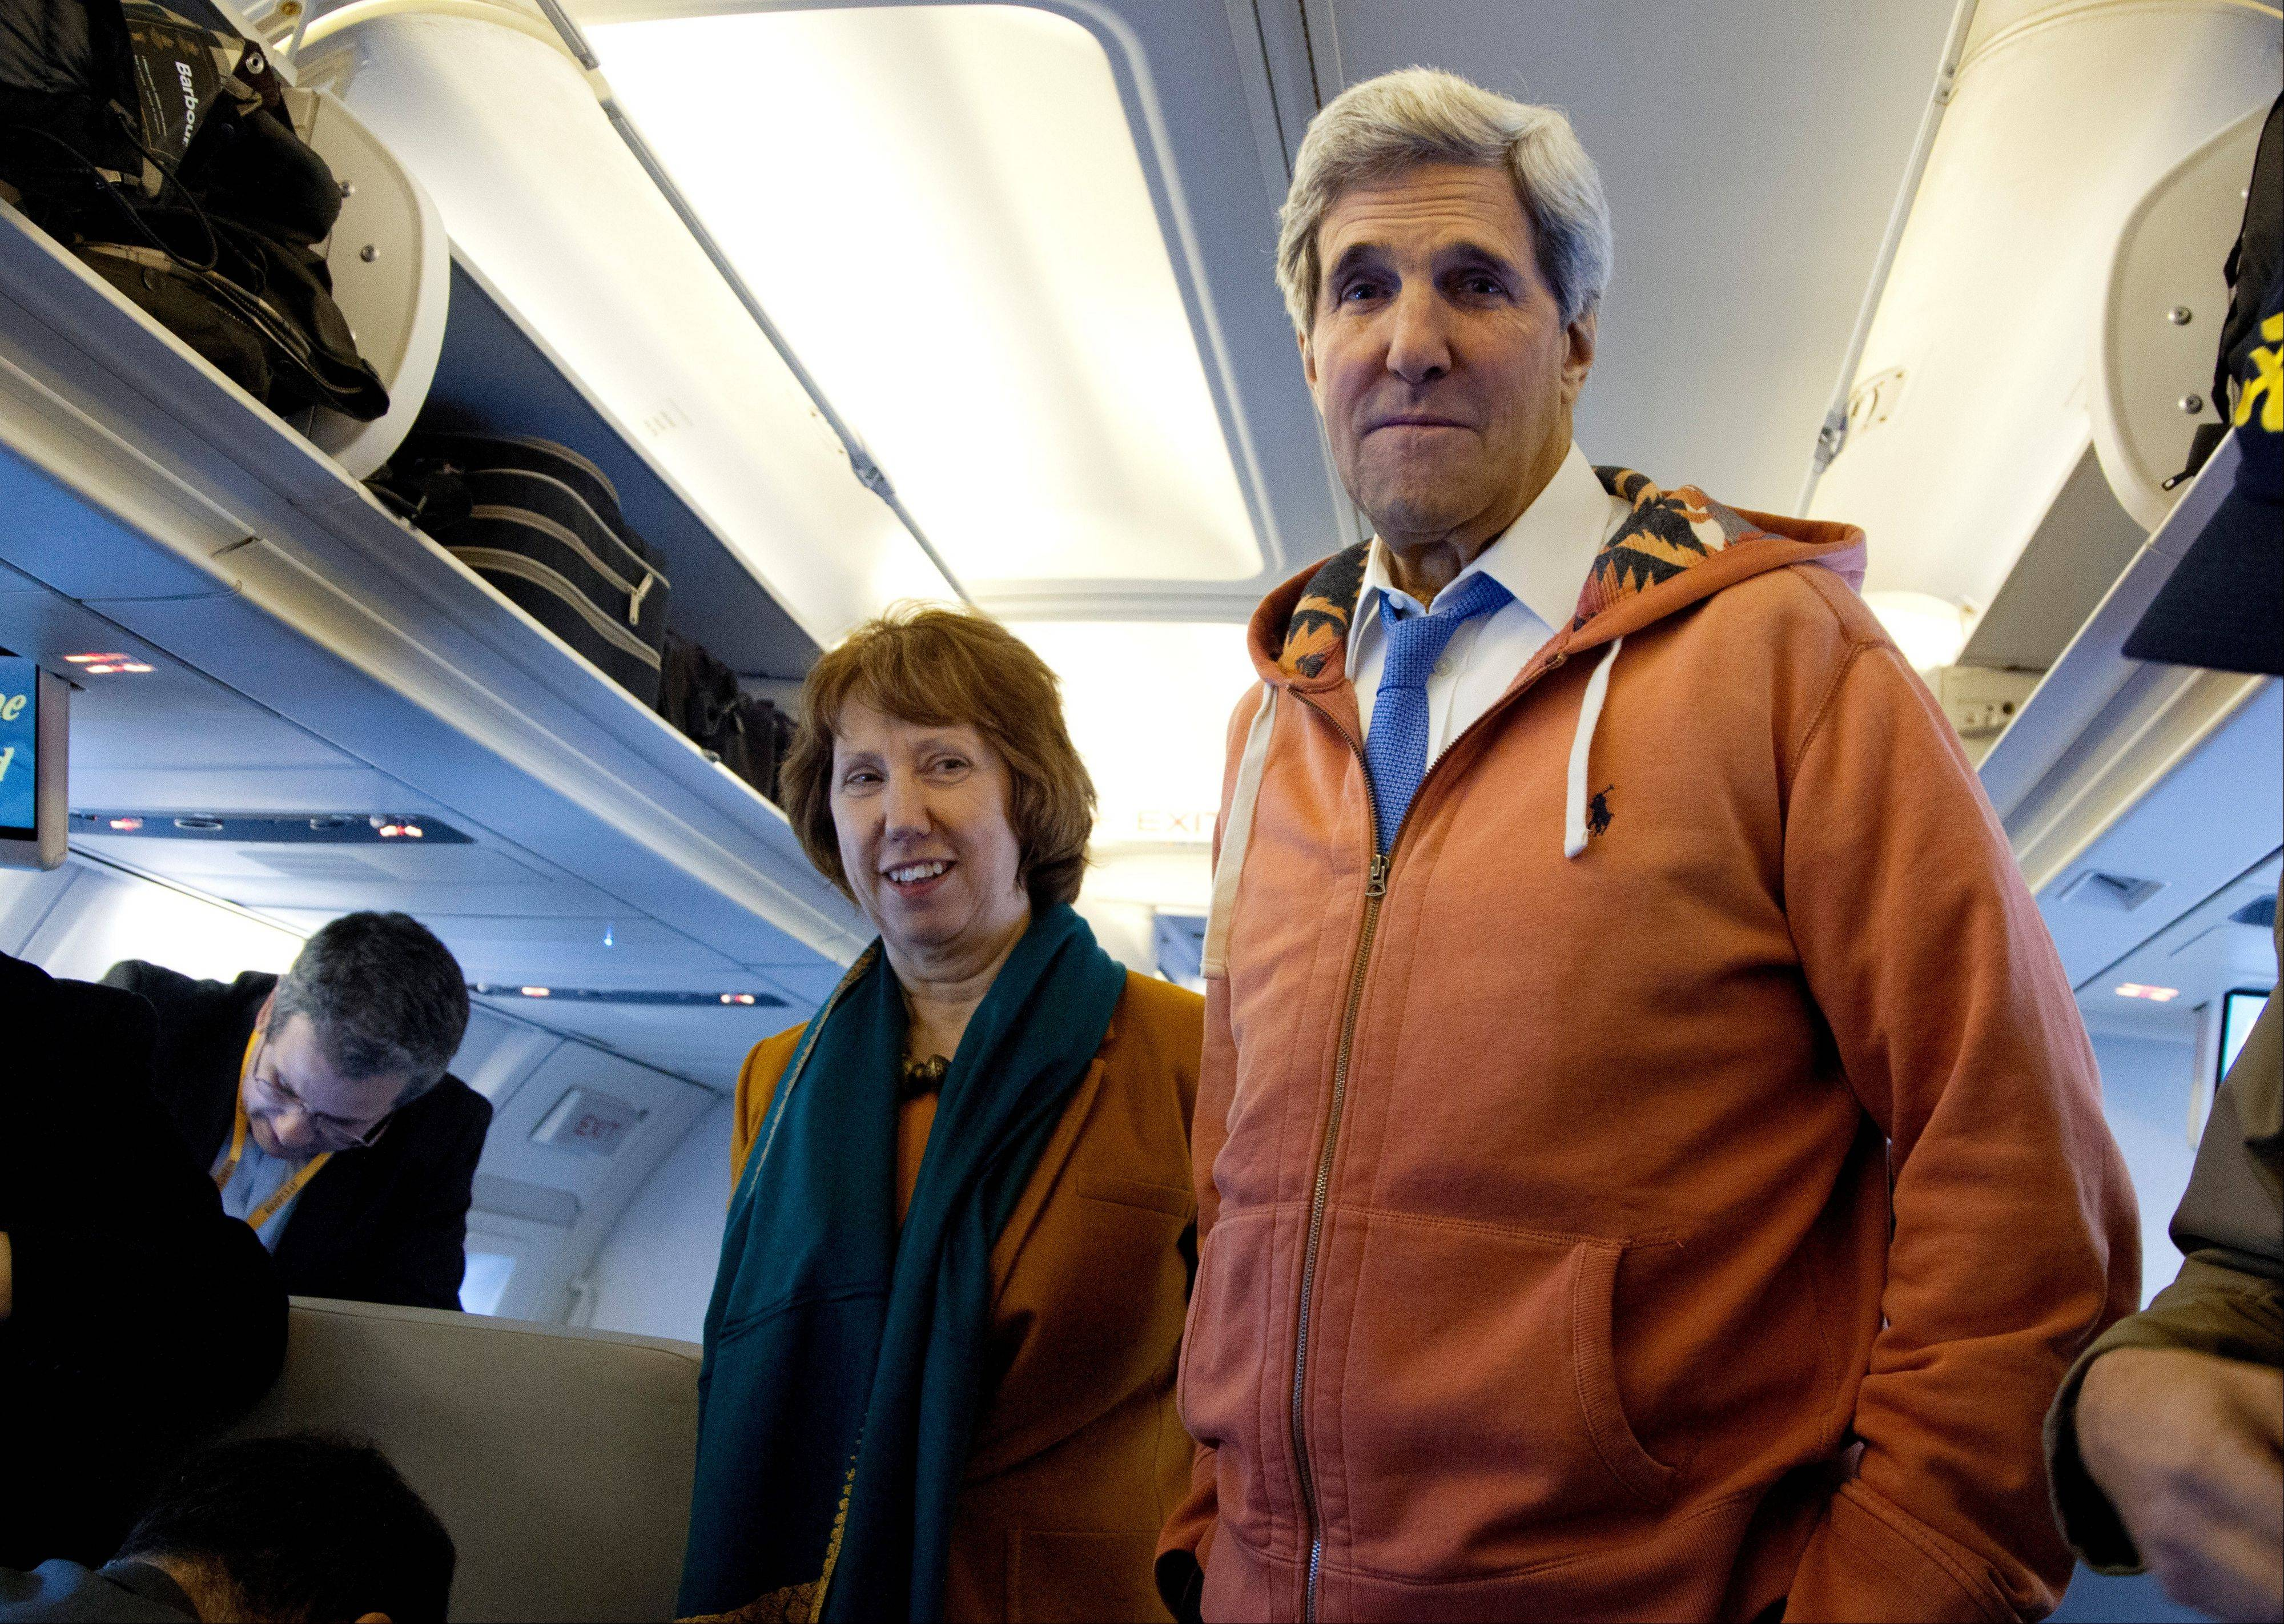 U.S. Secretary of State John Kerry, right, and EU foreign policy chief Catherine Ashton, left, visit the media seating area of Kerry's aircraft as it sits on the tarmac at Geneva International airport before leaving for London, Sunday, in Geneva, Switzerland. A deal has been reached between six world powers and Iran that calls on Tehran to limit its nuclear activities in return for sanctions relief, the French and Iranian foreign ministers said early Sunday.